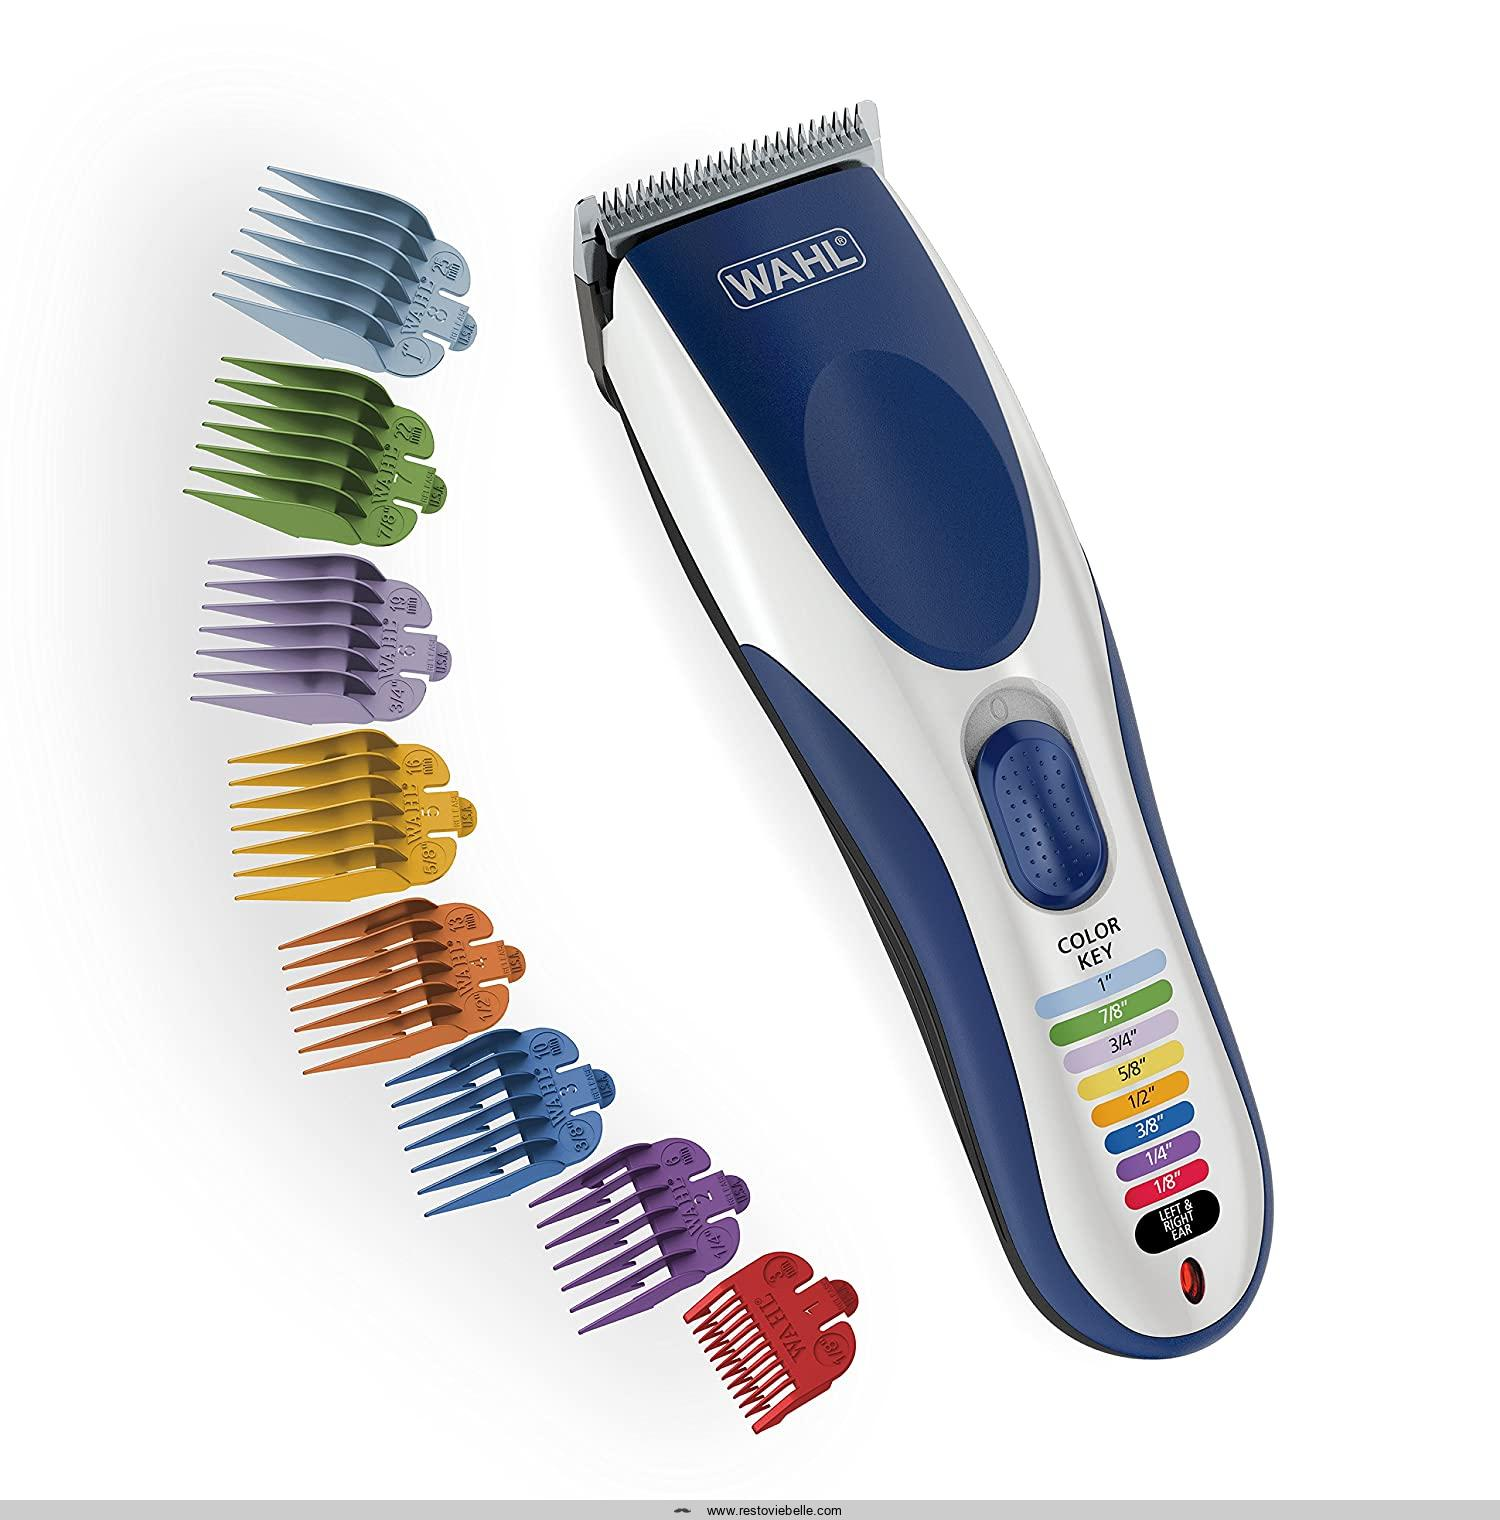 Wahl Color Pro Cordless Rechargeable